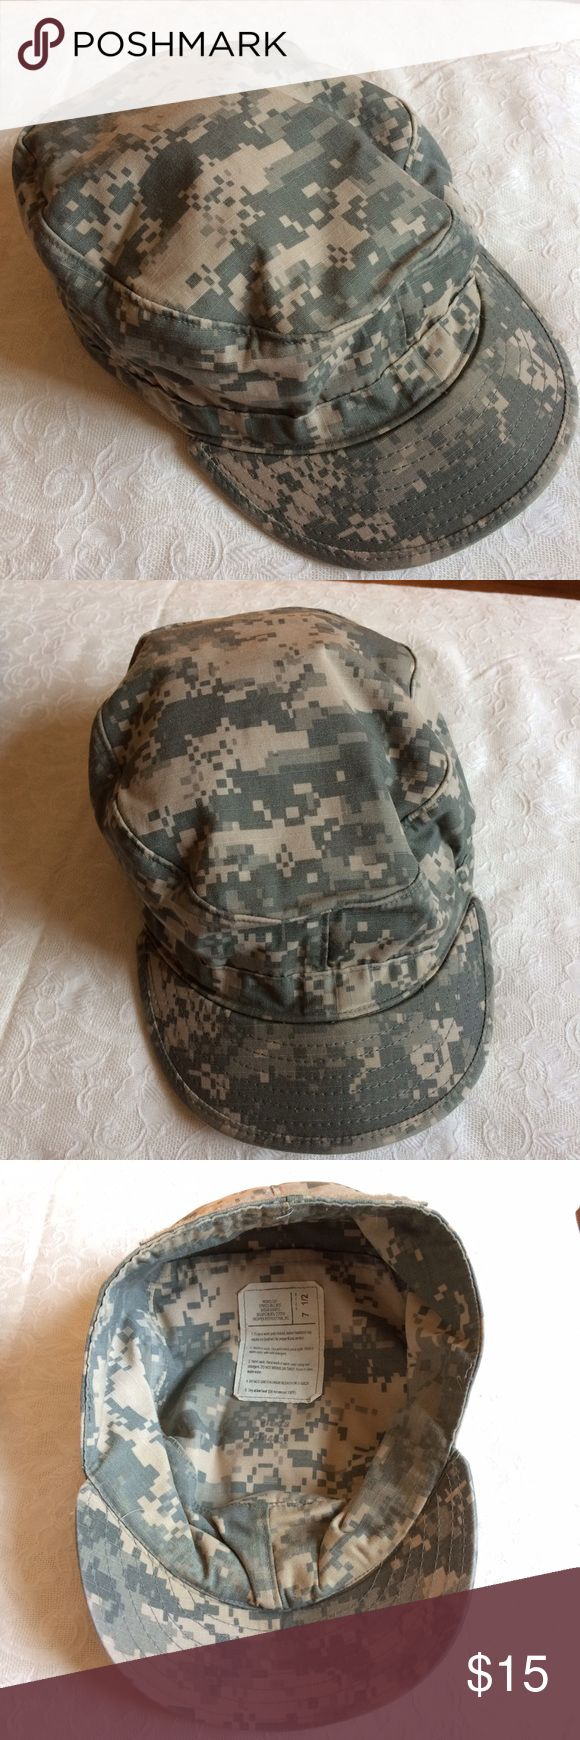 US ARMY digital camouflage patrol cap -- size 7.5 Genuine military issue. In well-worn condition. 50% nylon, 50% cotton. Accessories Hats